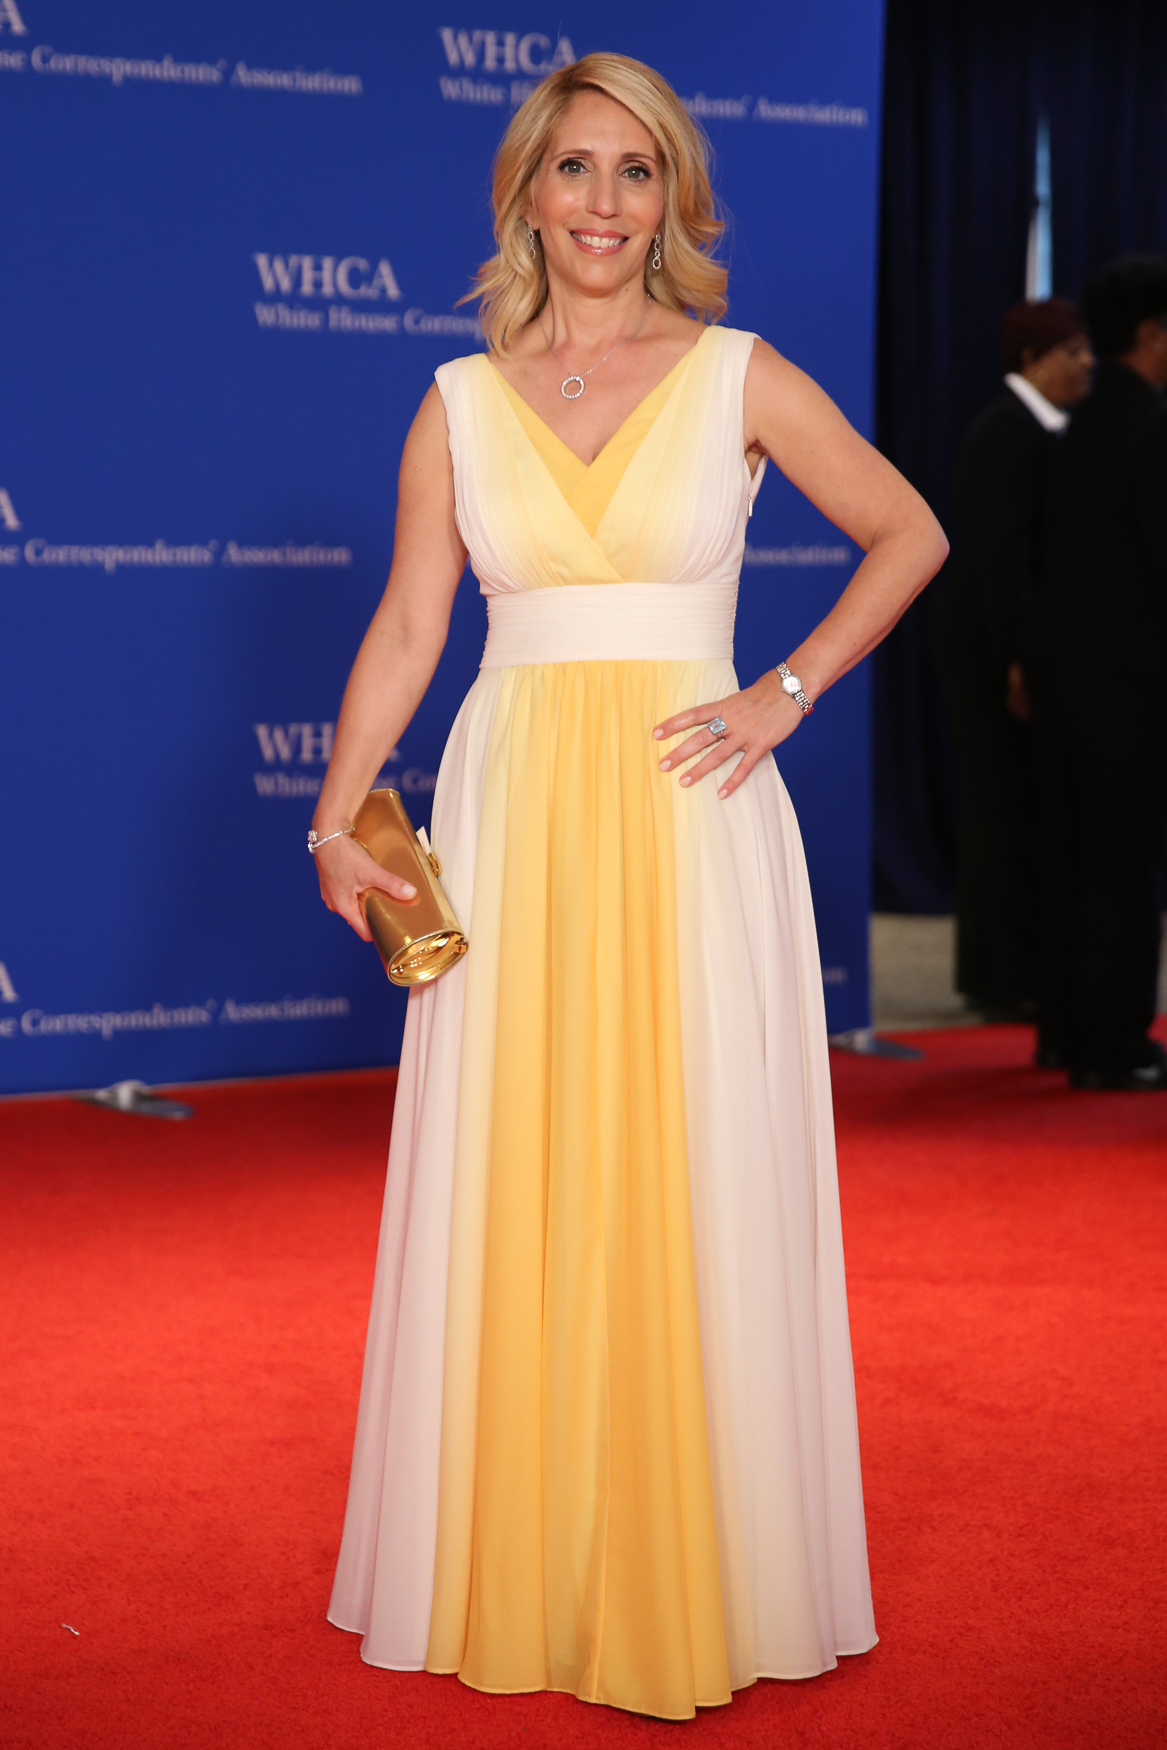 Dana Bash looks like a ray of sunshine in the best way.{ }(Amanda Andrade-Rhoades/DC Refined)